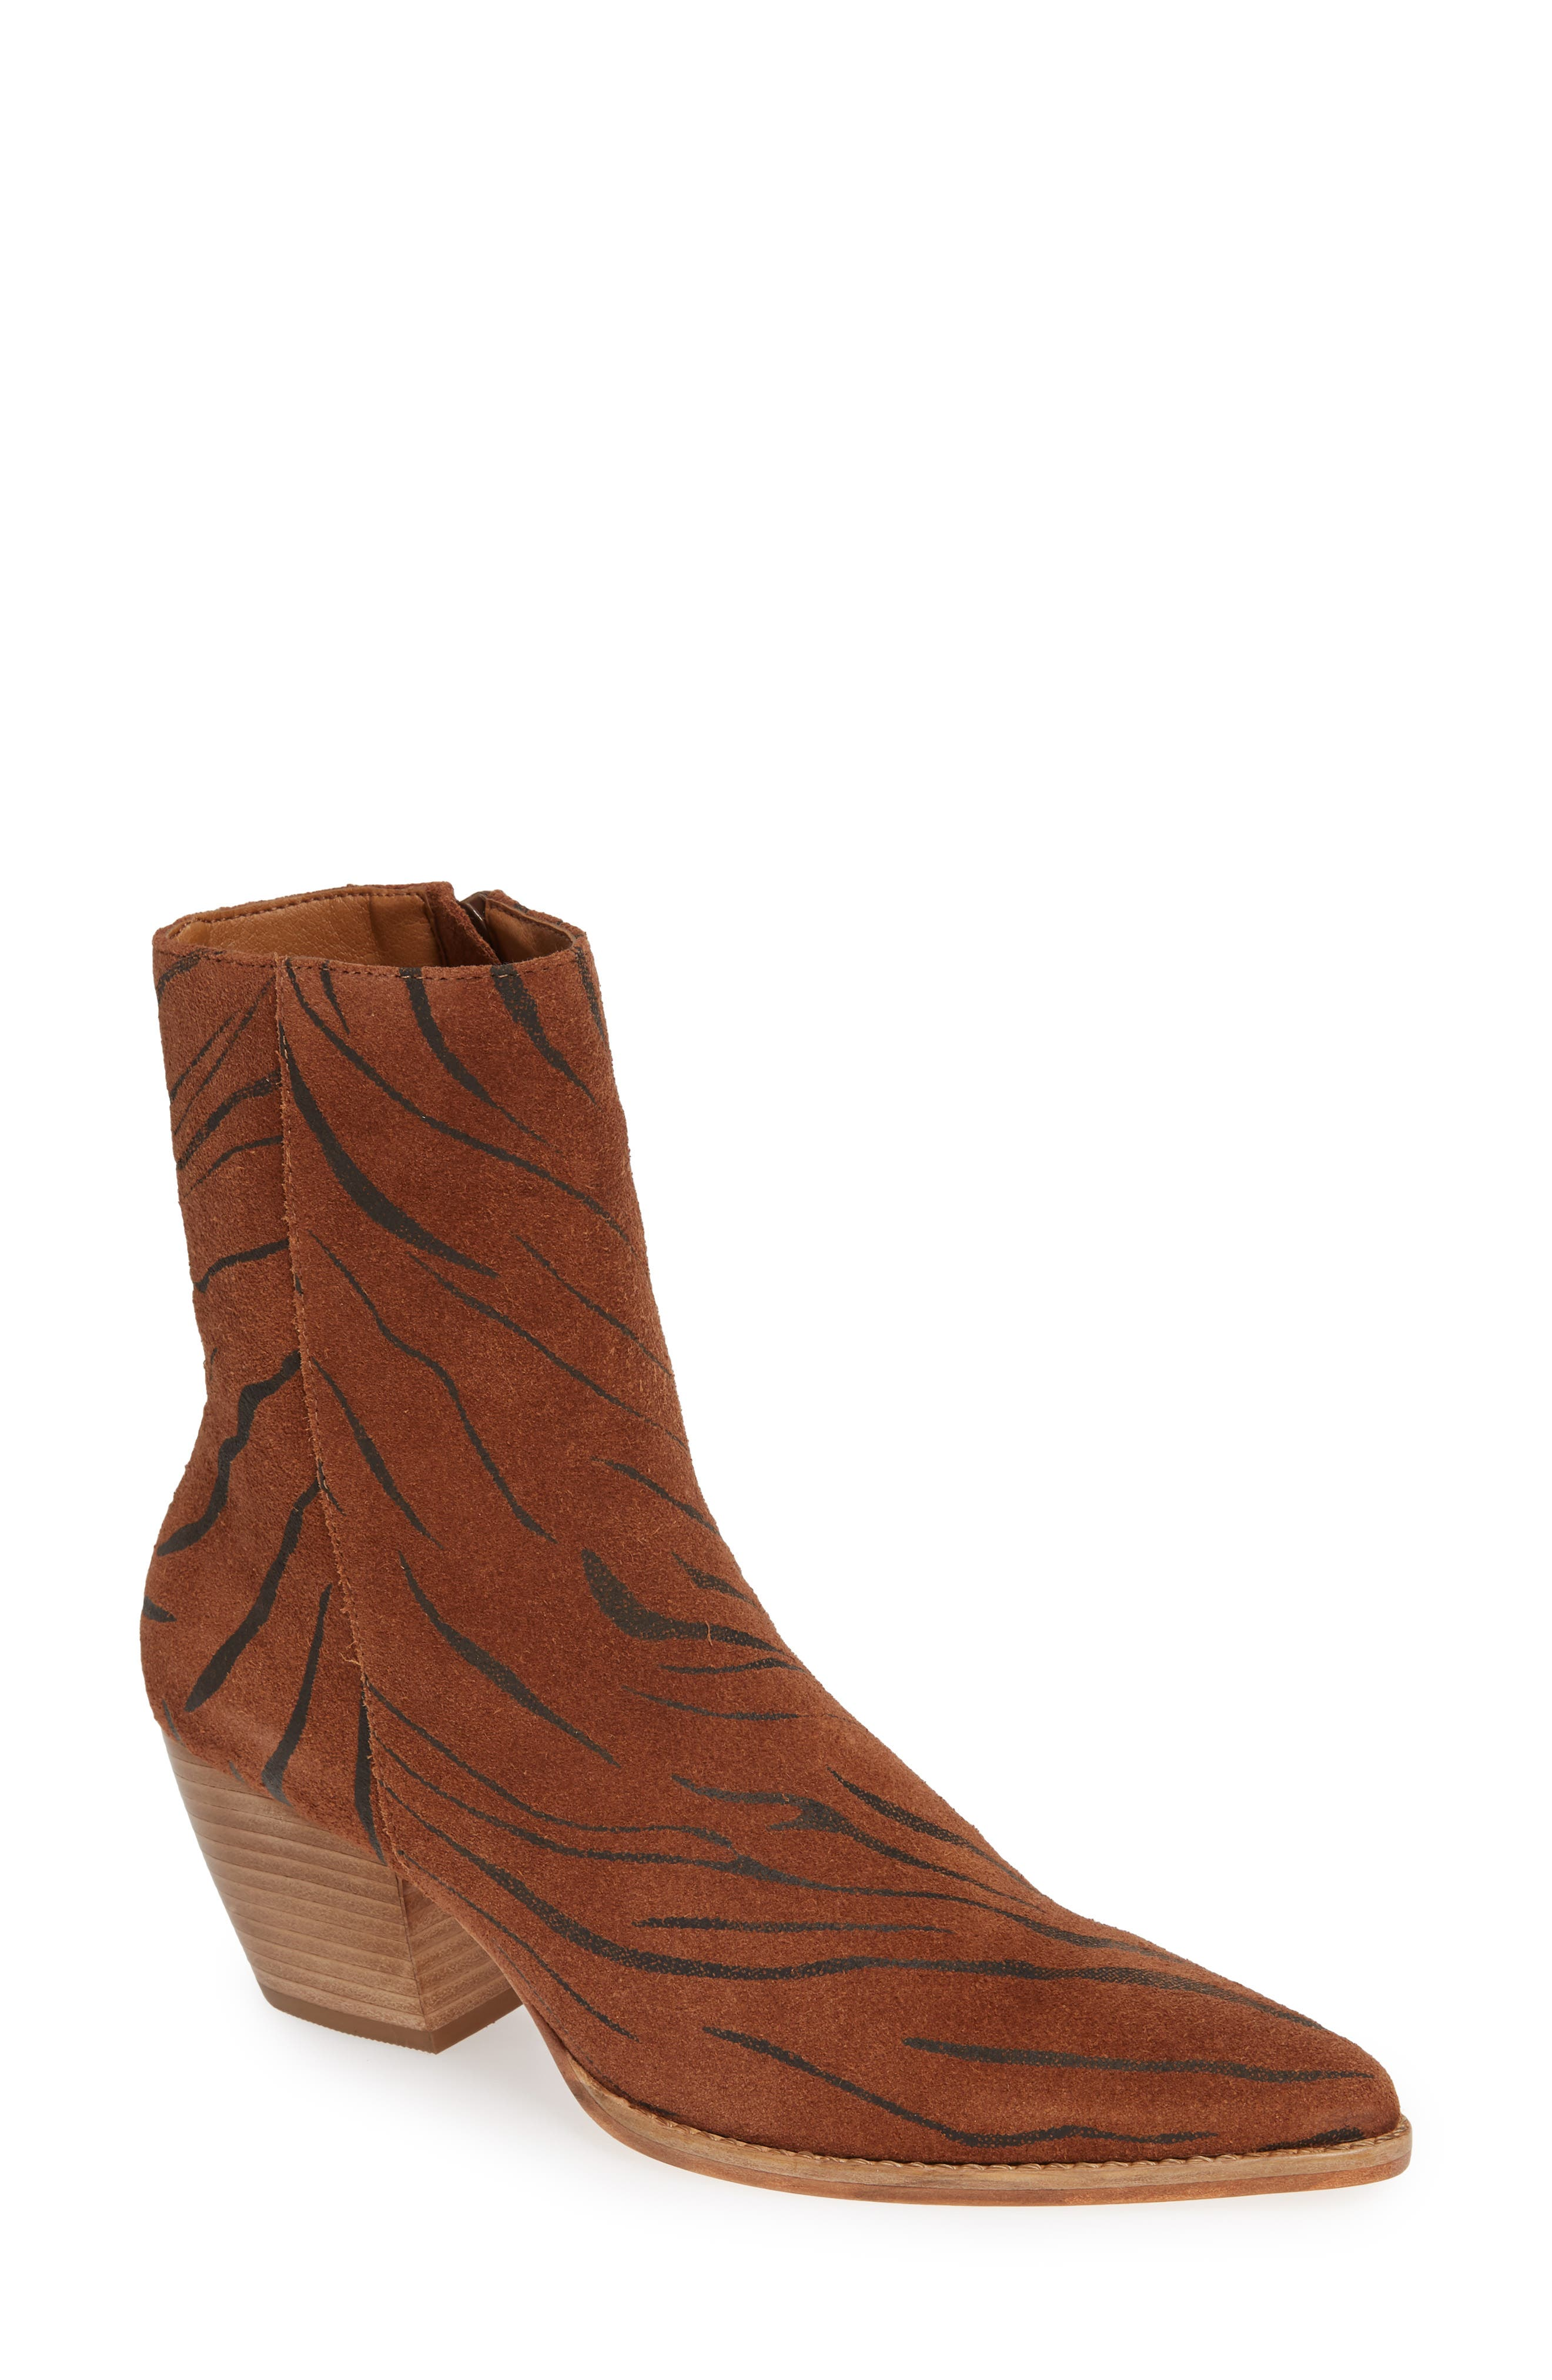 Caty Western Pointy Toe Bootie,                             Main thumbnail 1, color,                             TIGER SUEDE